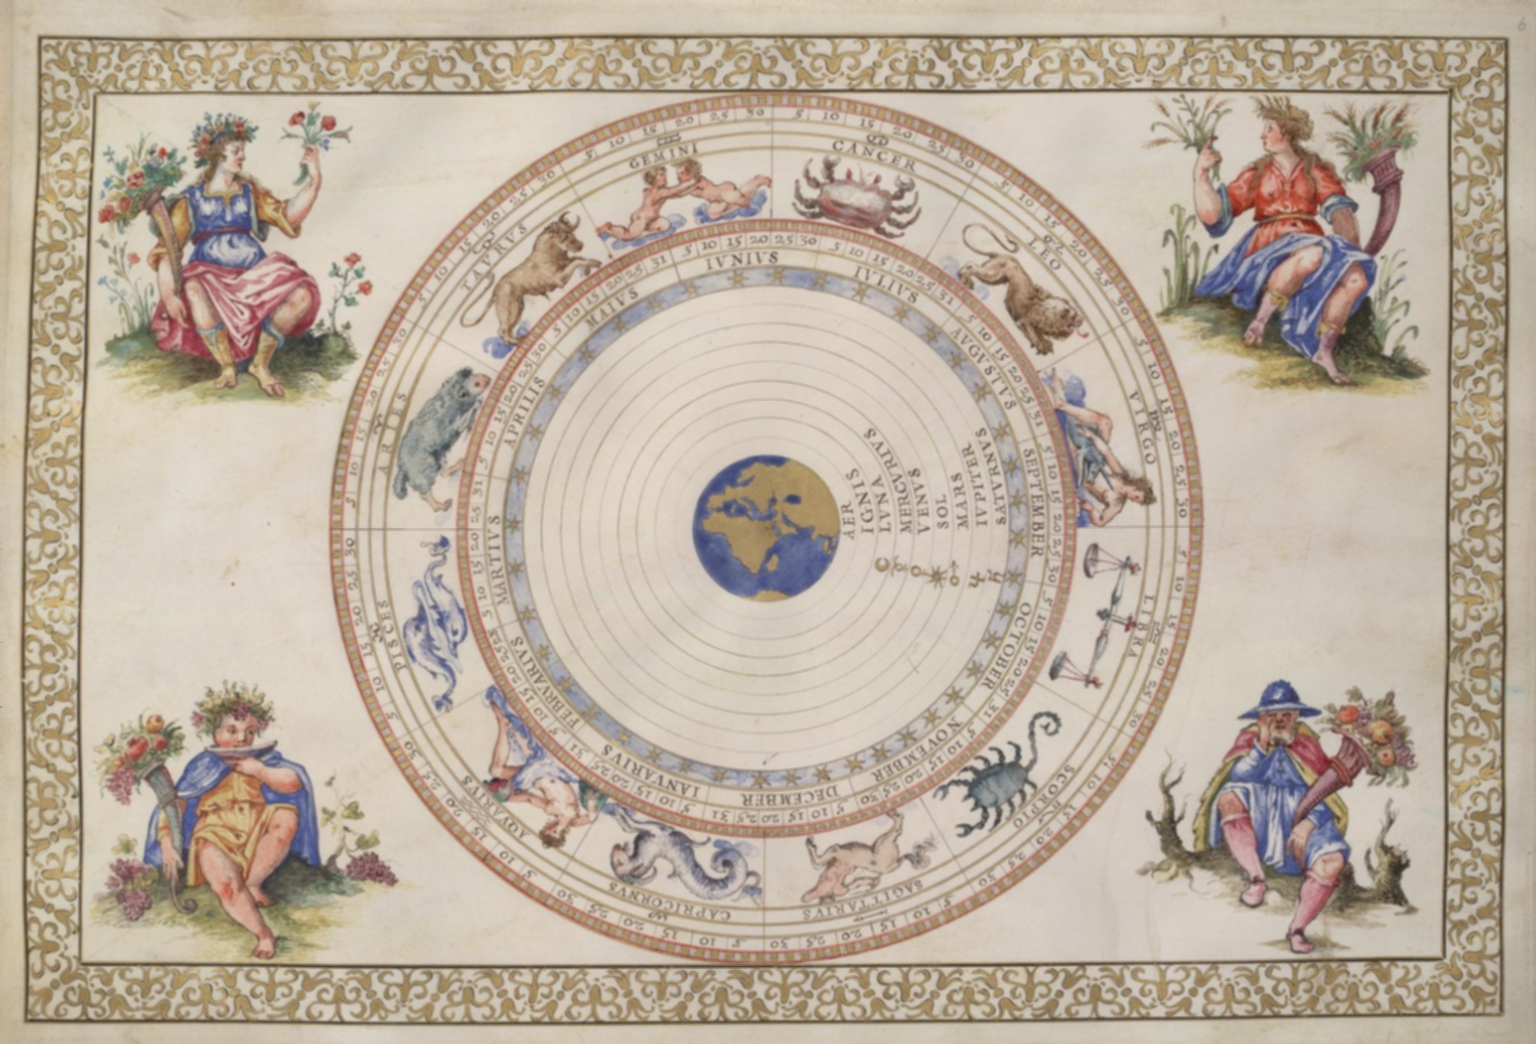 Planisphere with signs of zodiac and allegorical figures representing seasons